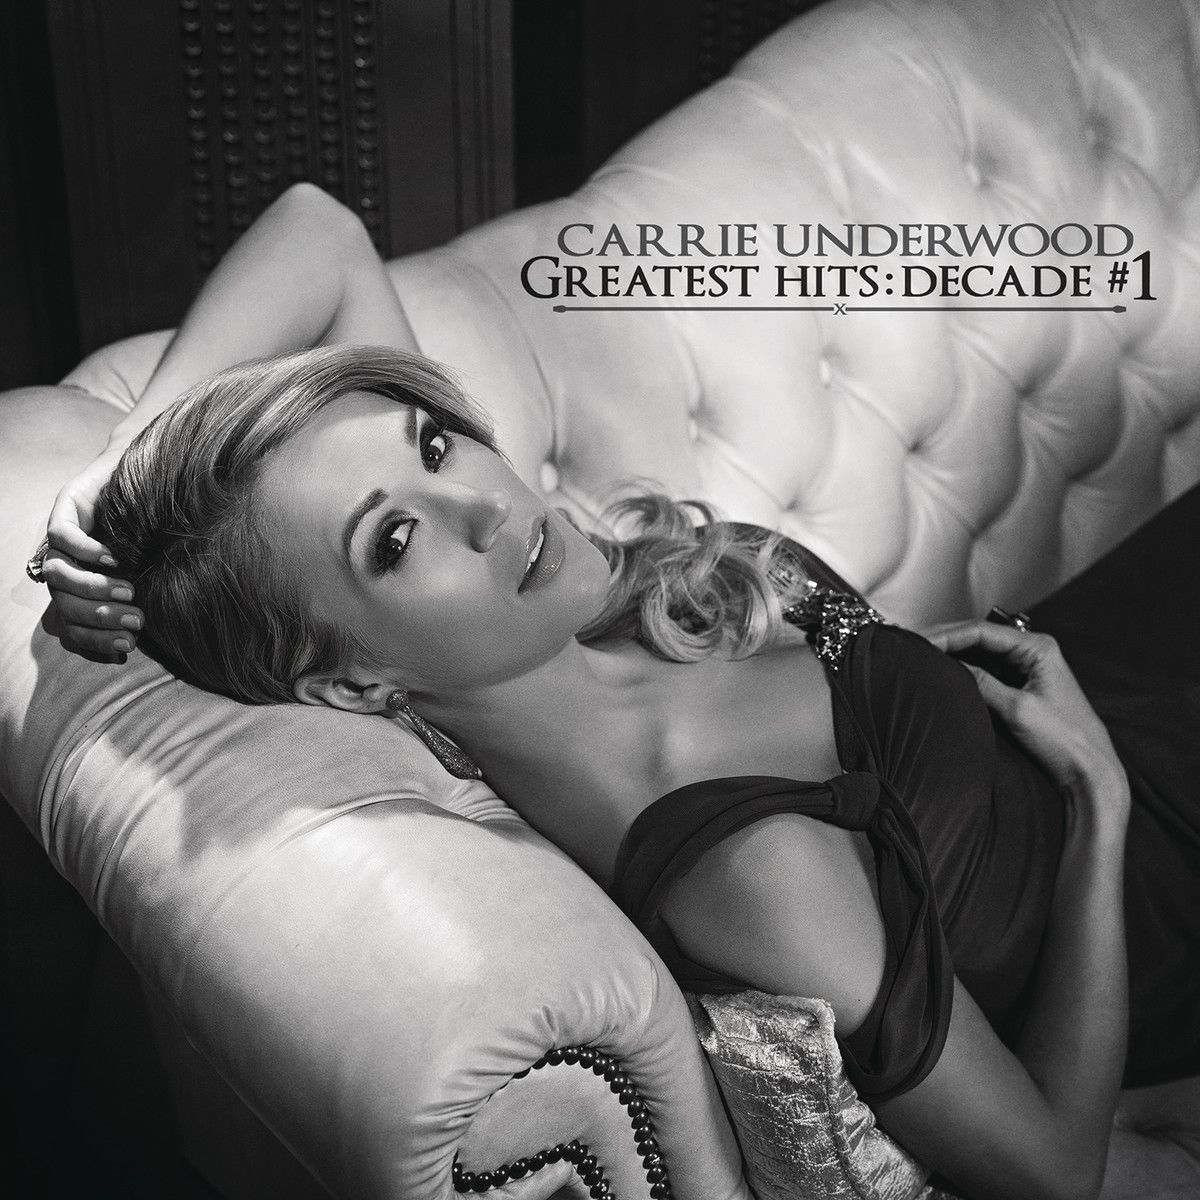 Carrie Underwood - Greatest Hits: Decade #1 - Album Cover